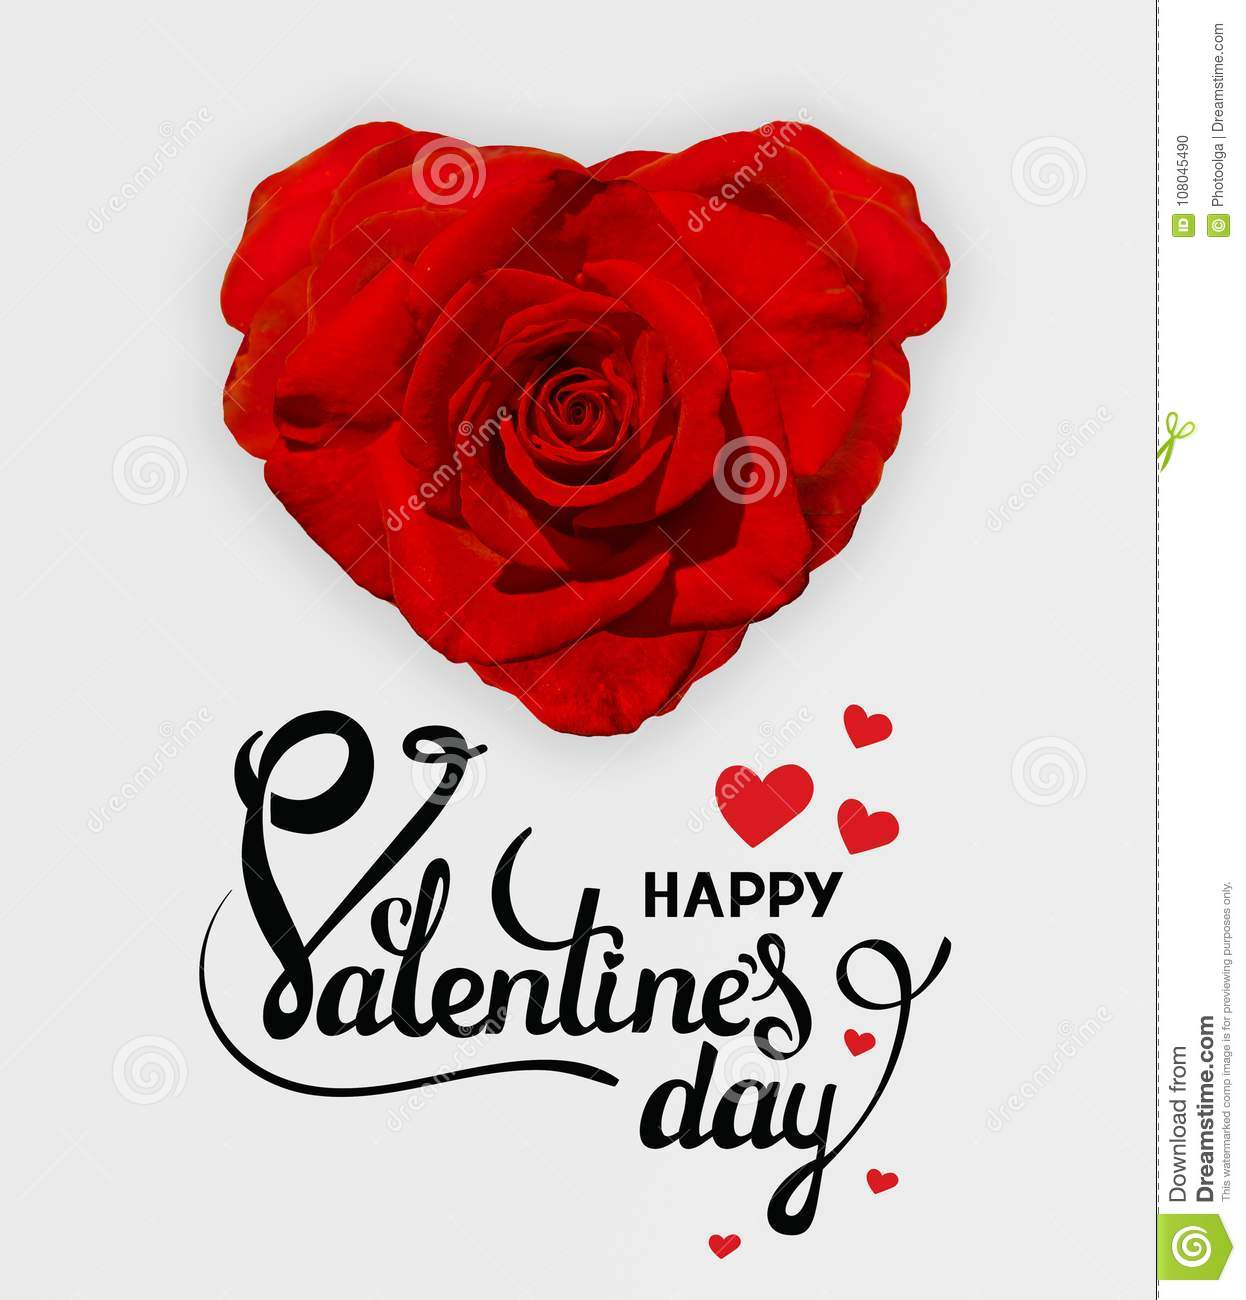 red rose in the shape of a heart happy valentines day card with